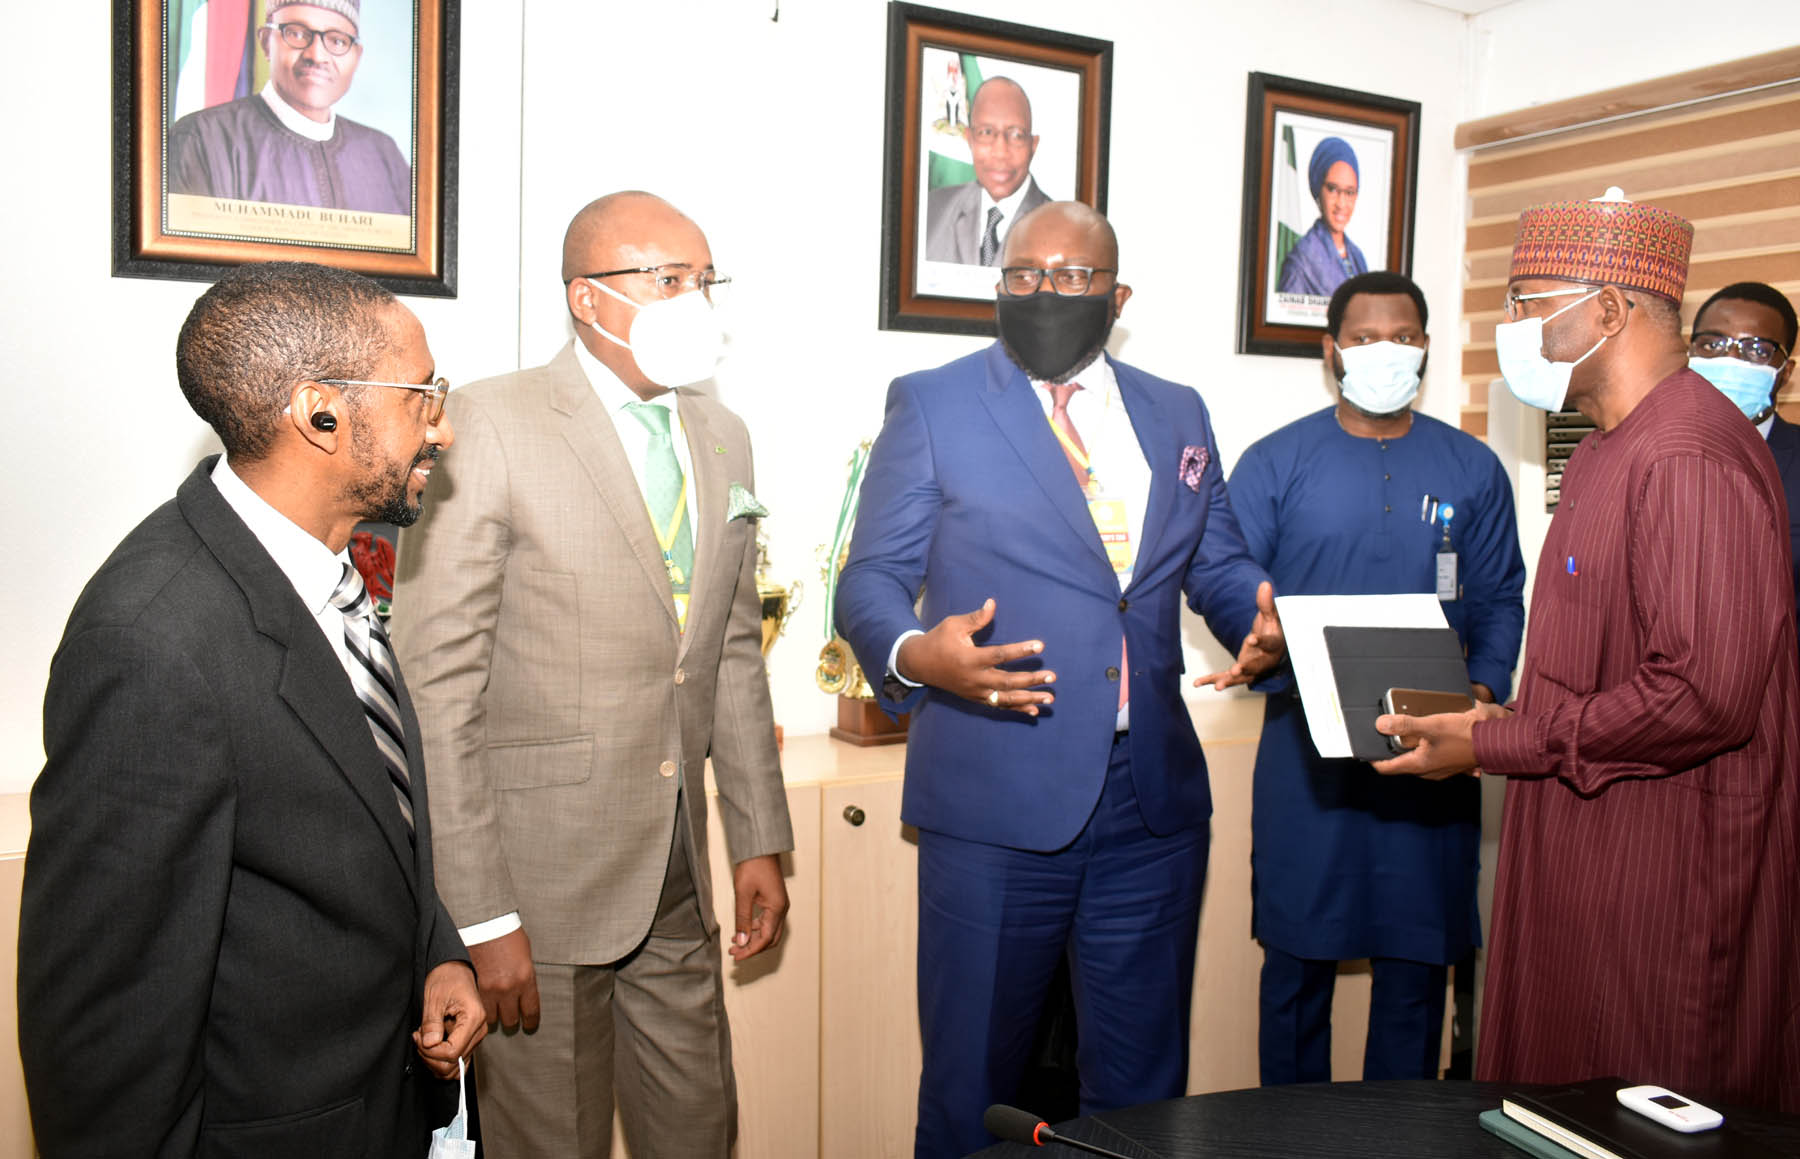 L-R, Executive Commissioner Corporate >> Services Securities and Exchange Commission Mr Ibrahim Boyi, Managing >> Director Central Securities Clearing System Plc Mr Haruna Jalo-Waziri >> Divisional Head Business Development CSCS Mr Adeyinka Shonekan, >> Executive Commissioner Operations, SEC Mr Dayo Obisan and  Director >> General SEC Mr Lamido Yuguda during a meeting between the SEC and CSCS >> in Abuja yesterday